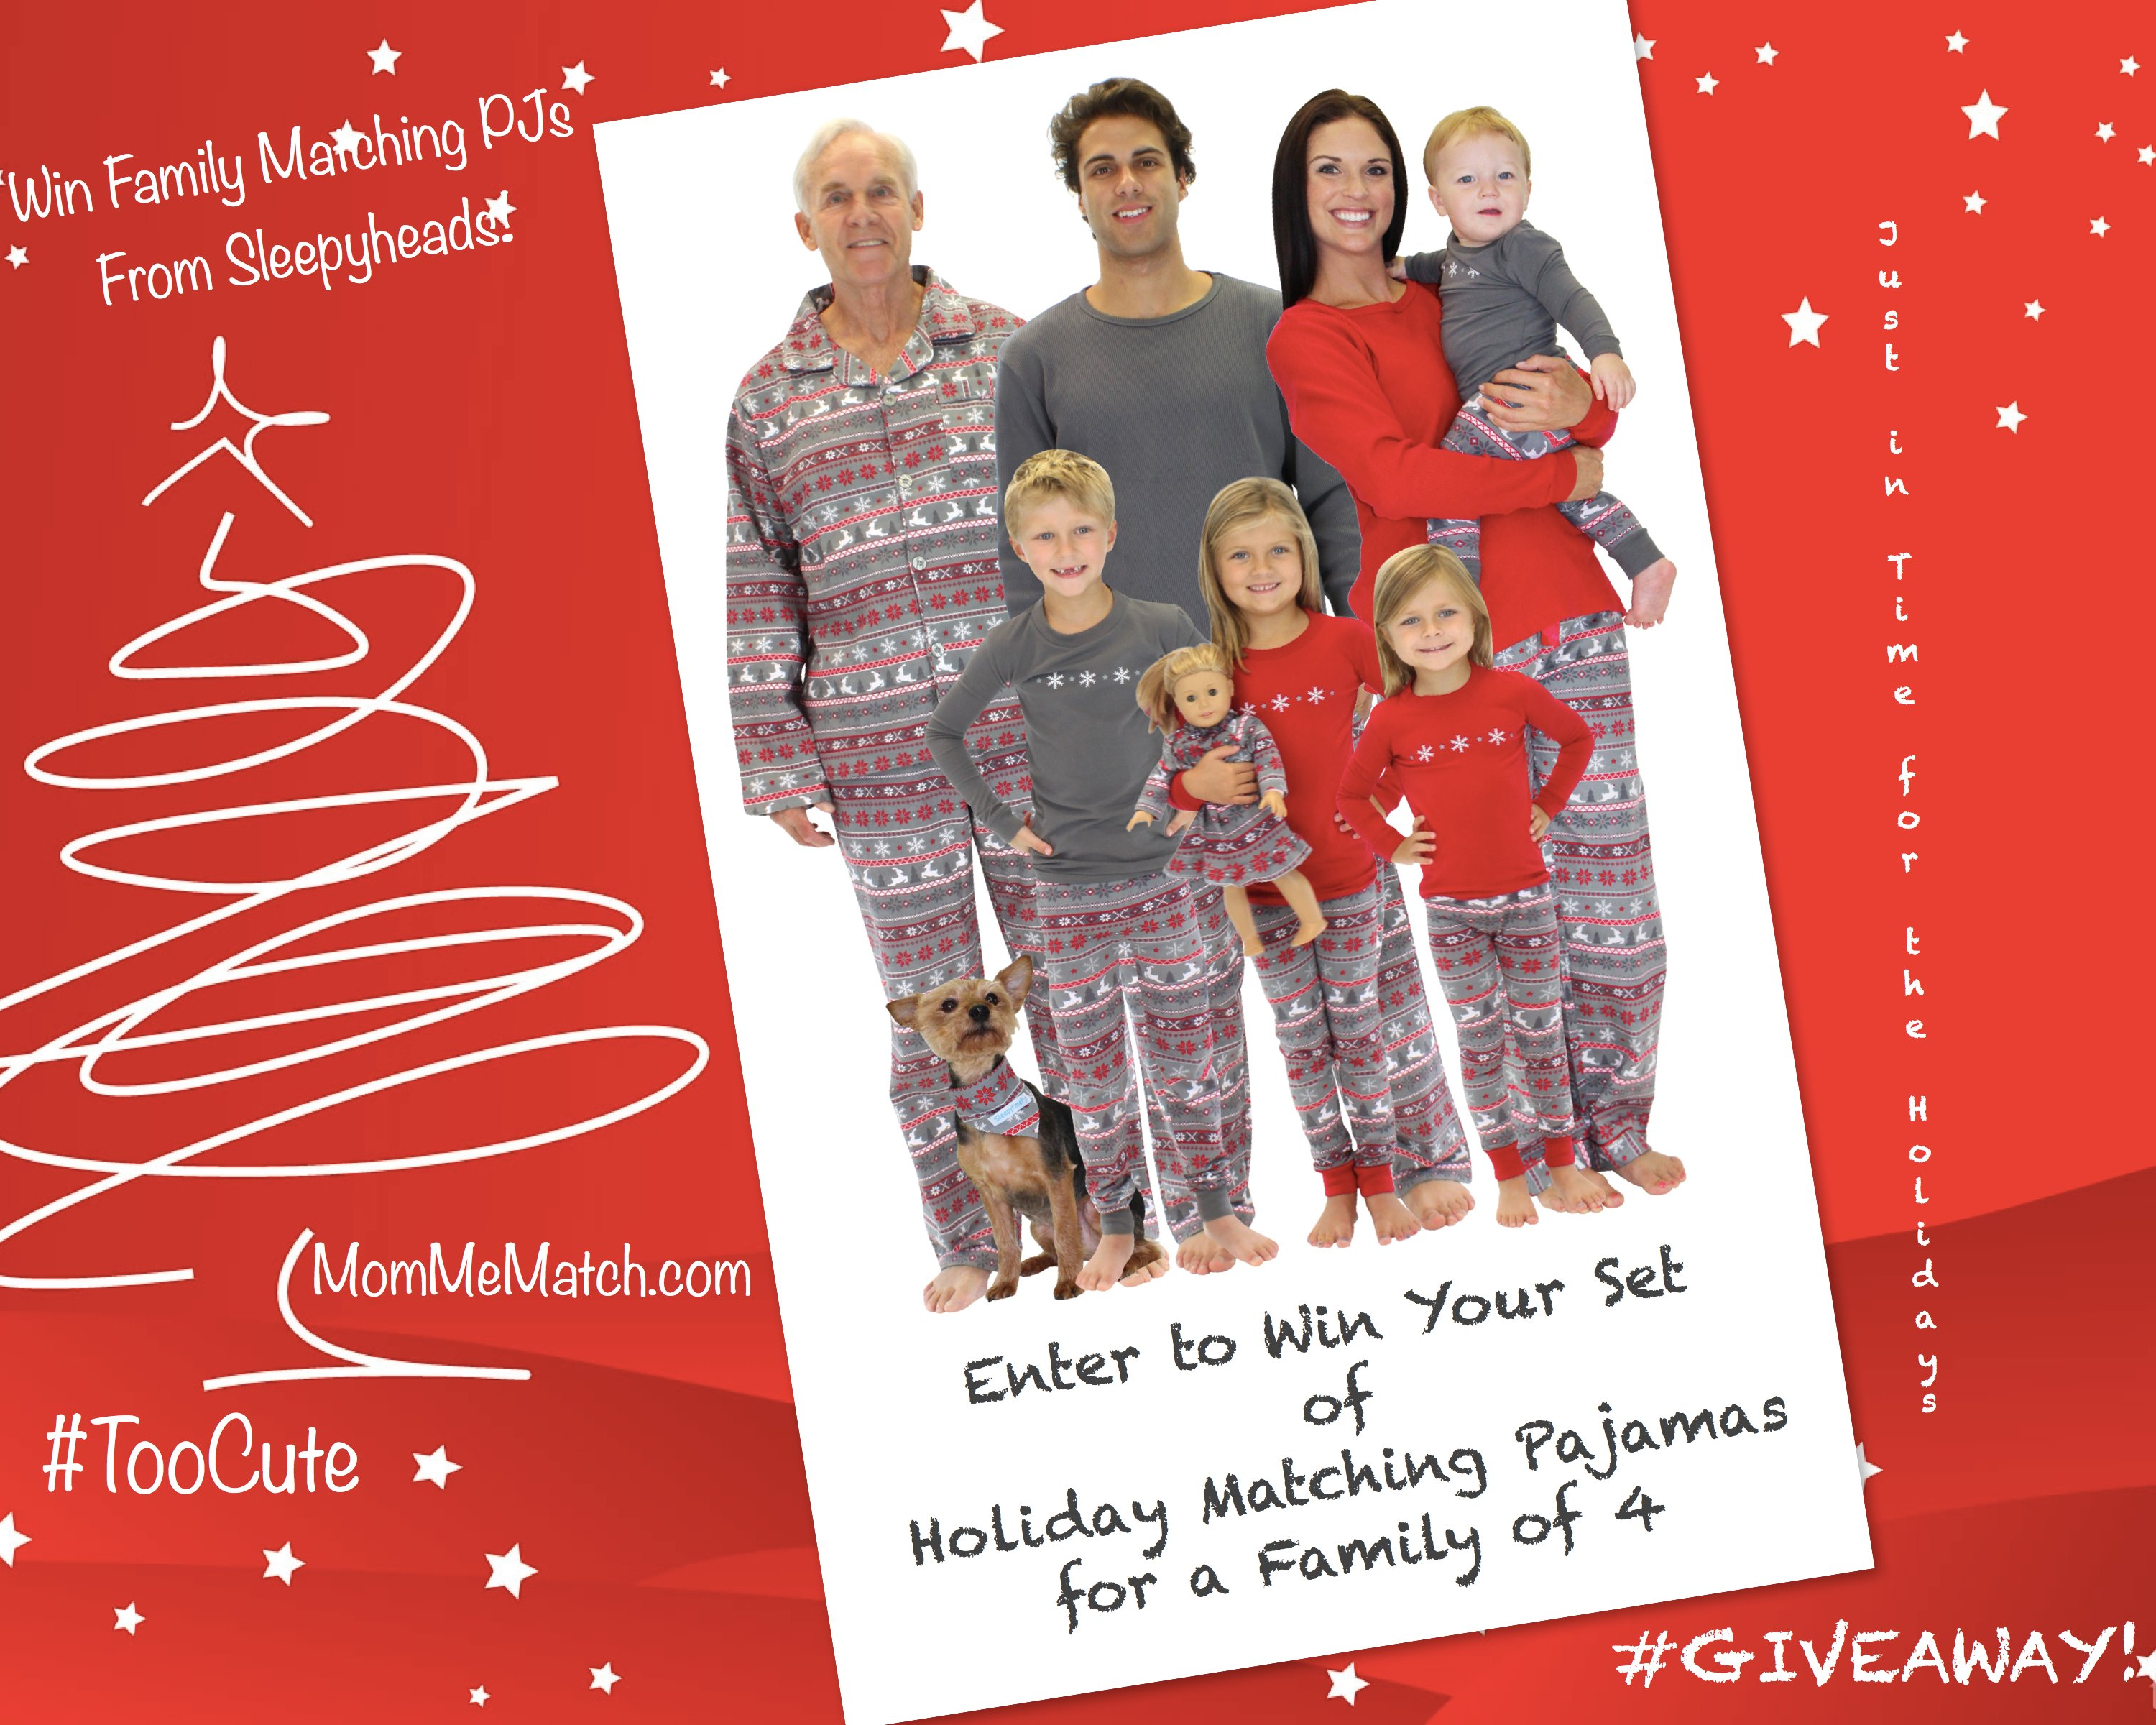 Win Family Matching Holiday Pajamas, Family Matching Holiday Pajamas Giveaway